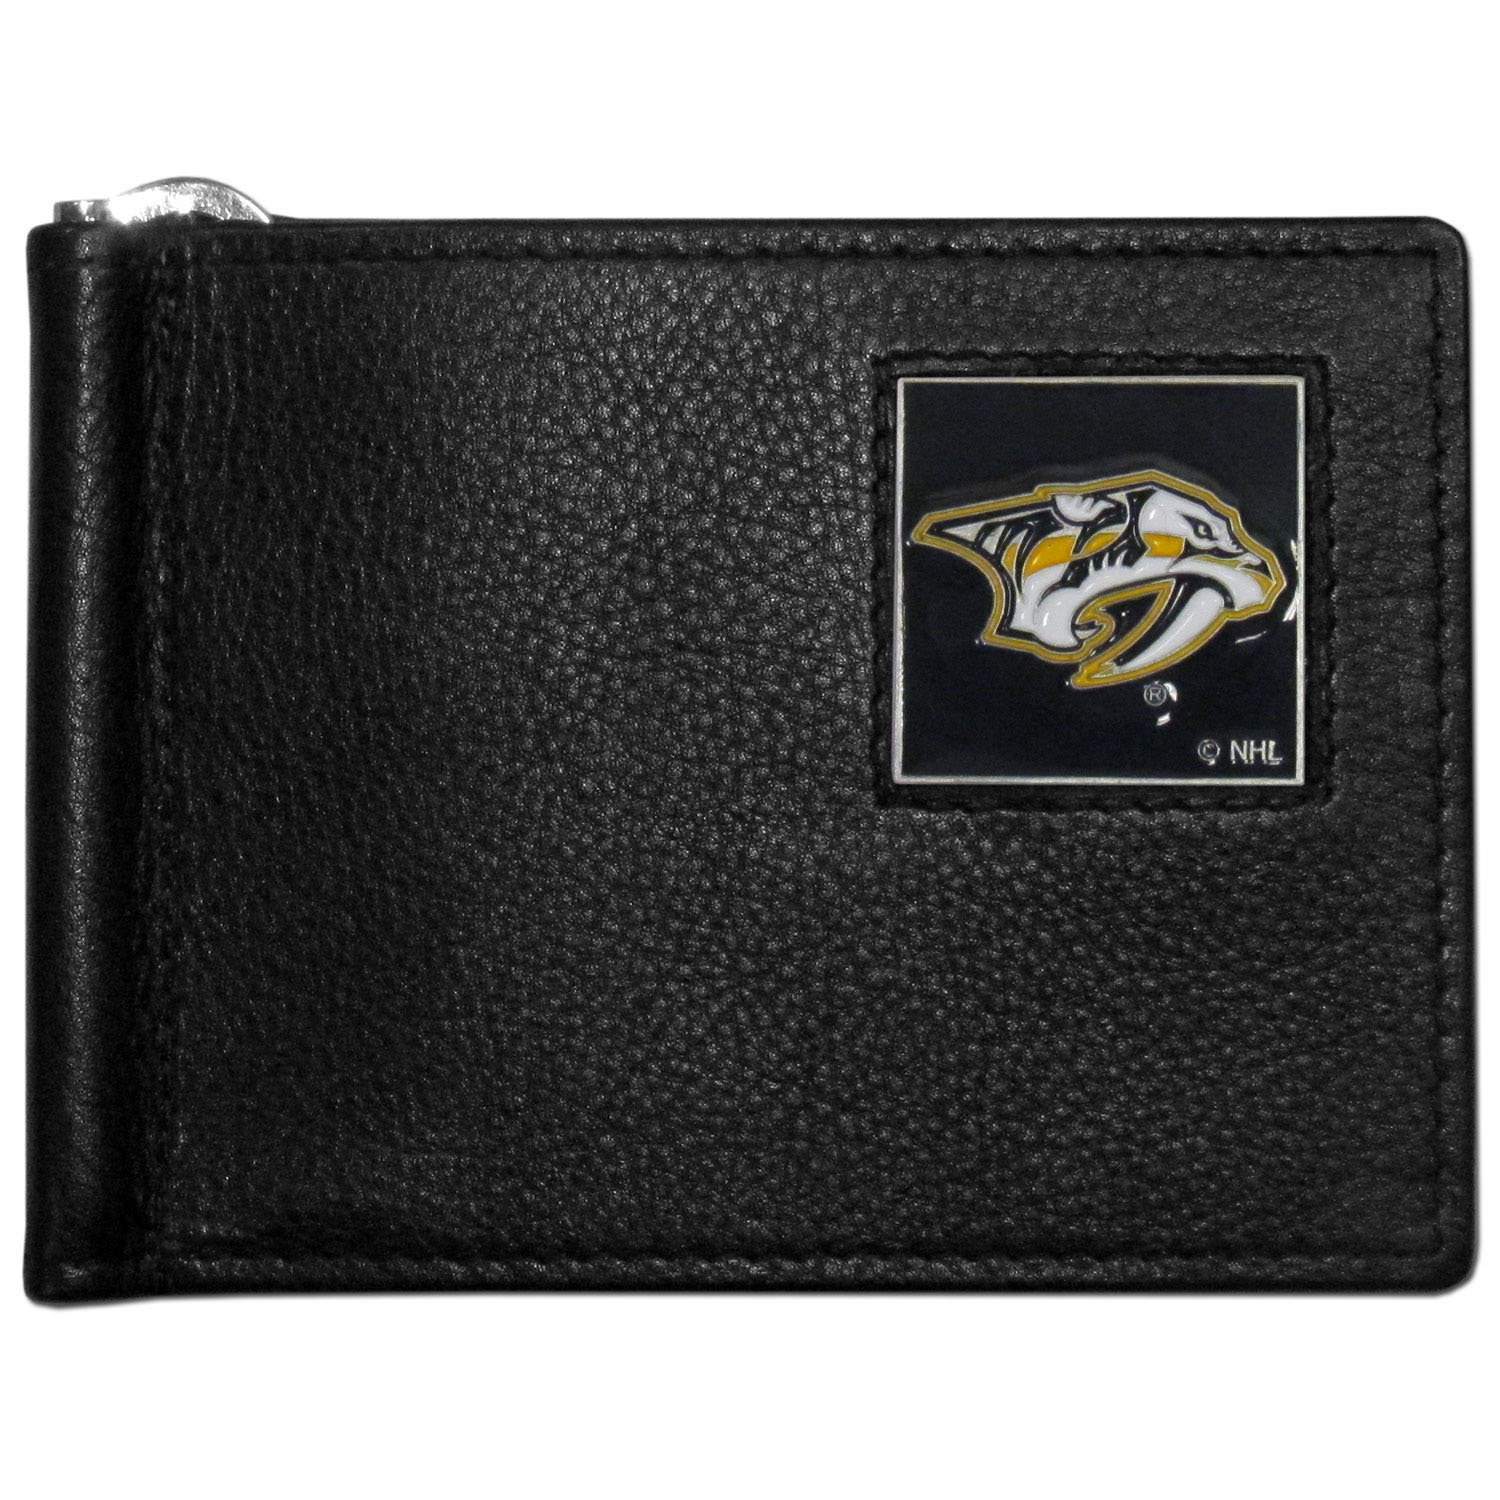 Nashville Predators® Leather Bill Clip Wallet - This cool new style wallet features an inner, metal bill clip that lips up for easy access. The super slim wallet holds tons of stuff with ample pockets, credit card slots & windowed ID slot. The wallet is made of genuine fine grain leather and it finished with a metal Nashville Predators® emblem. The wallet is shipped in gift box packaging.